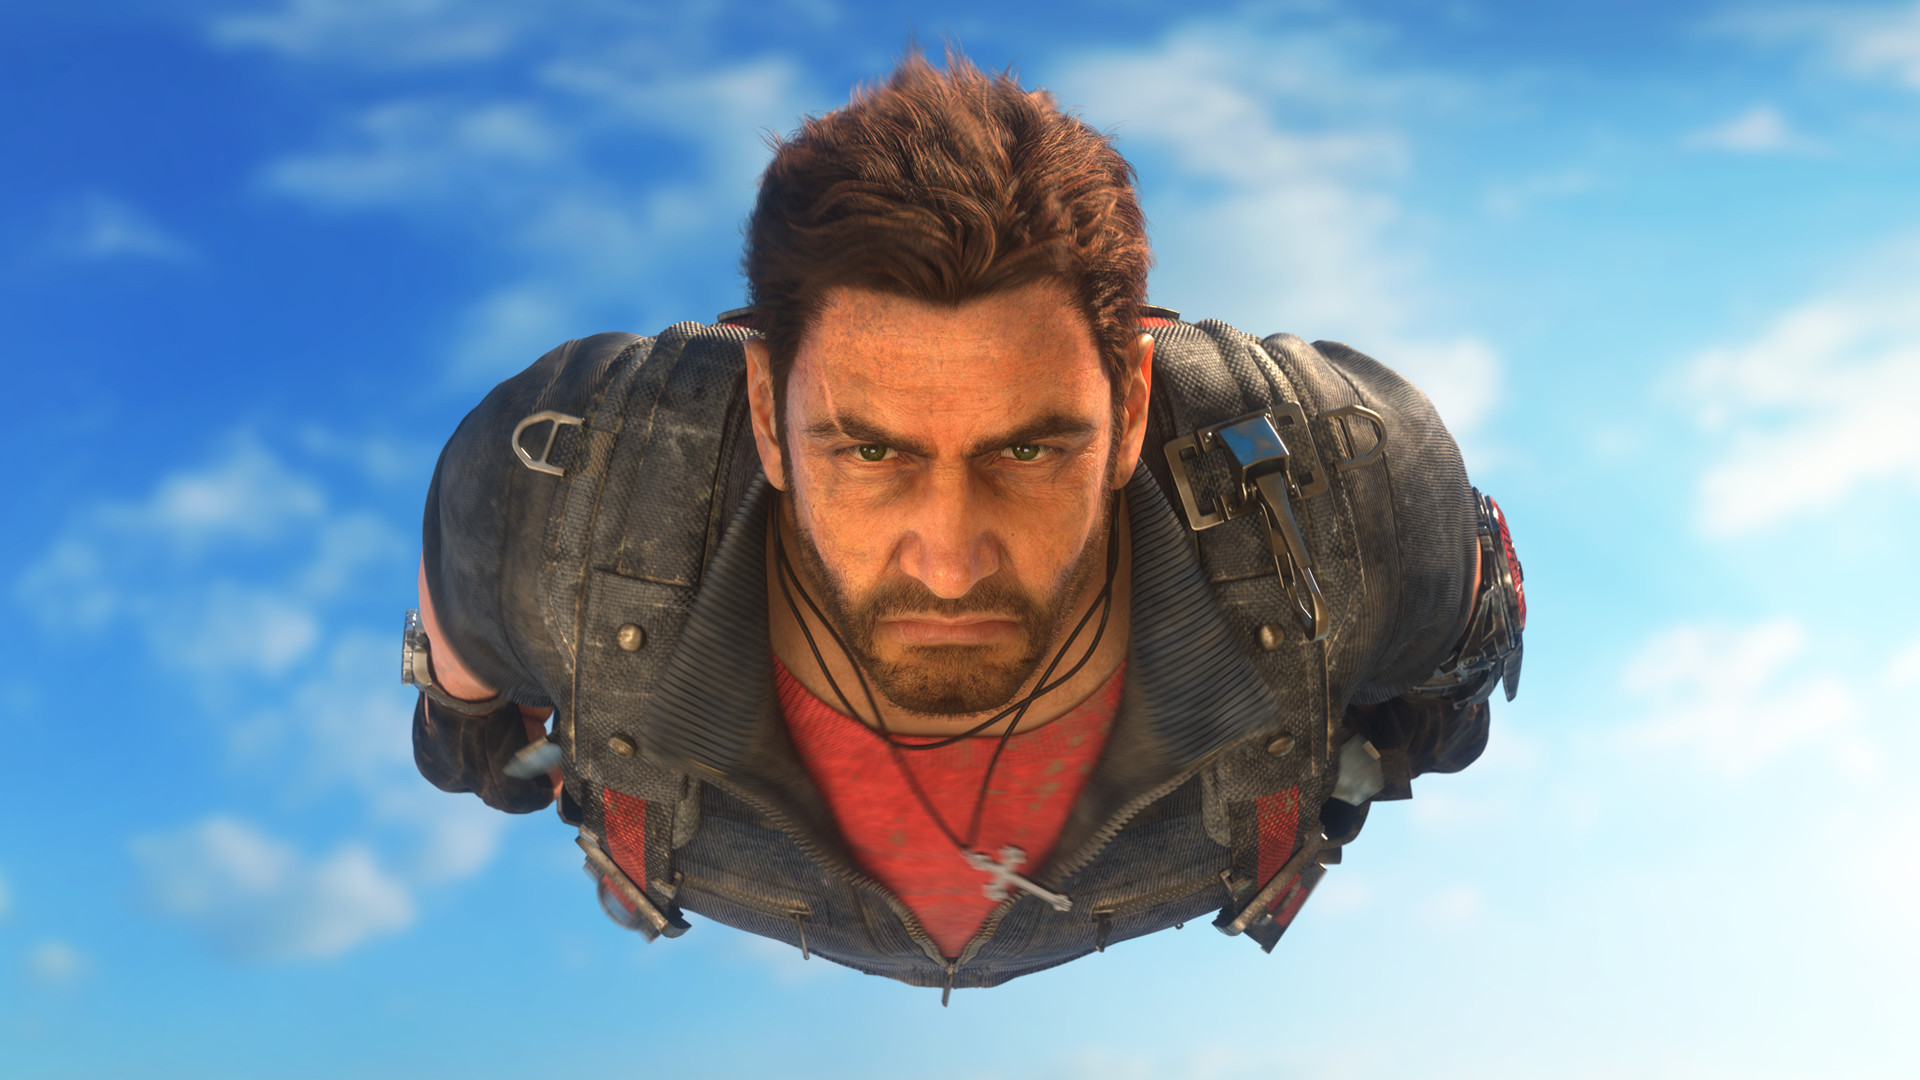 Steam Card Exchange Showcase Just Cause 3 Penny In Fuse Box Explosion Of 6artwork Freefall Rico